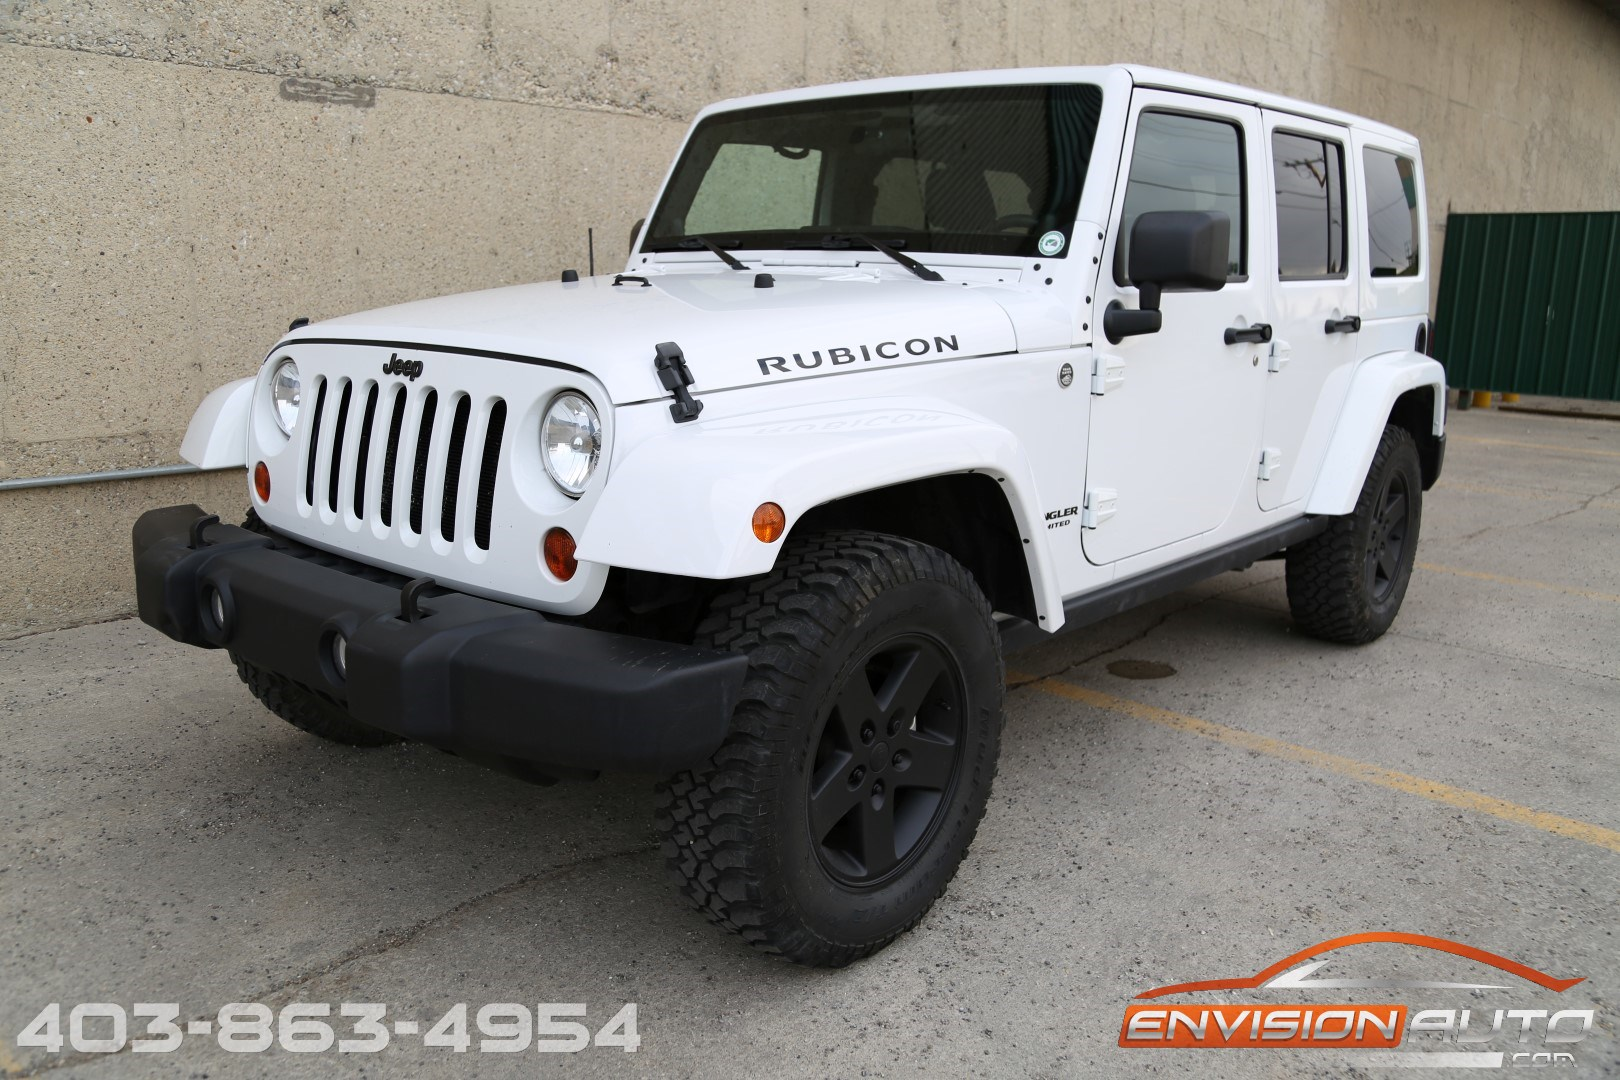 2012 jeep wrangler unlimited rubicon 4 x 4 6 speed. Black Bedroom Furniture Sets. Home Design Ideas